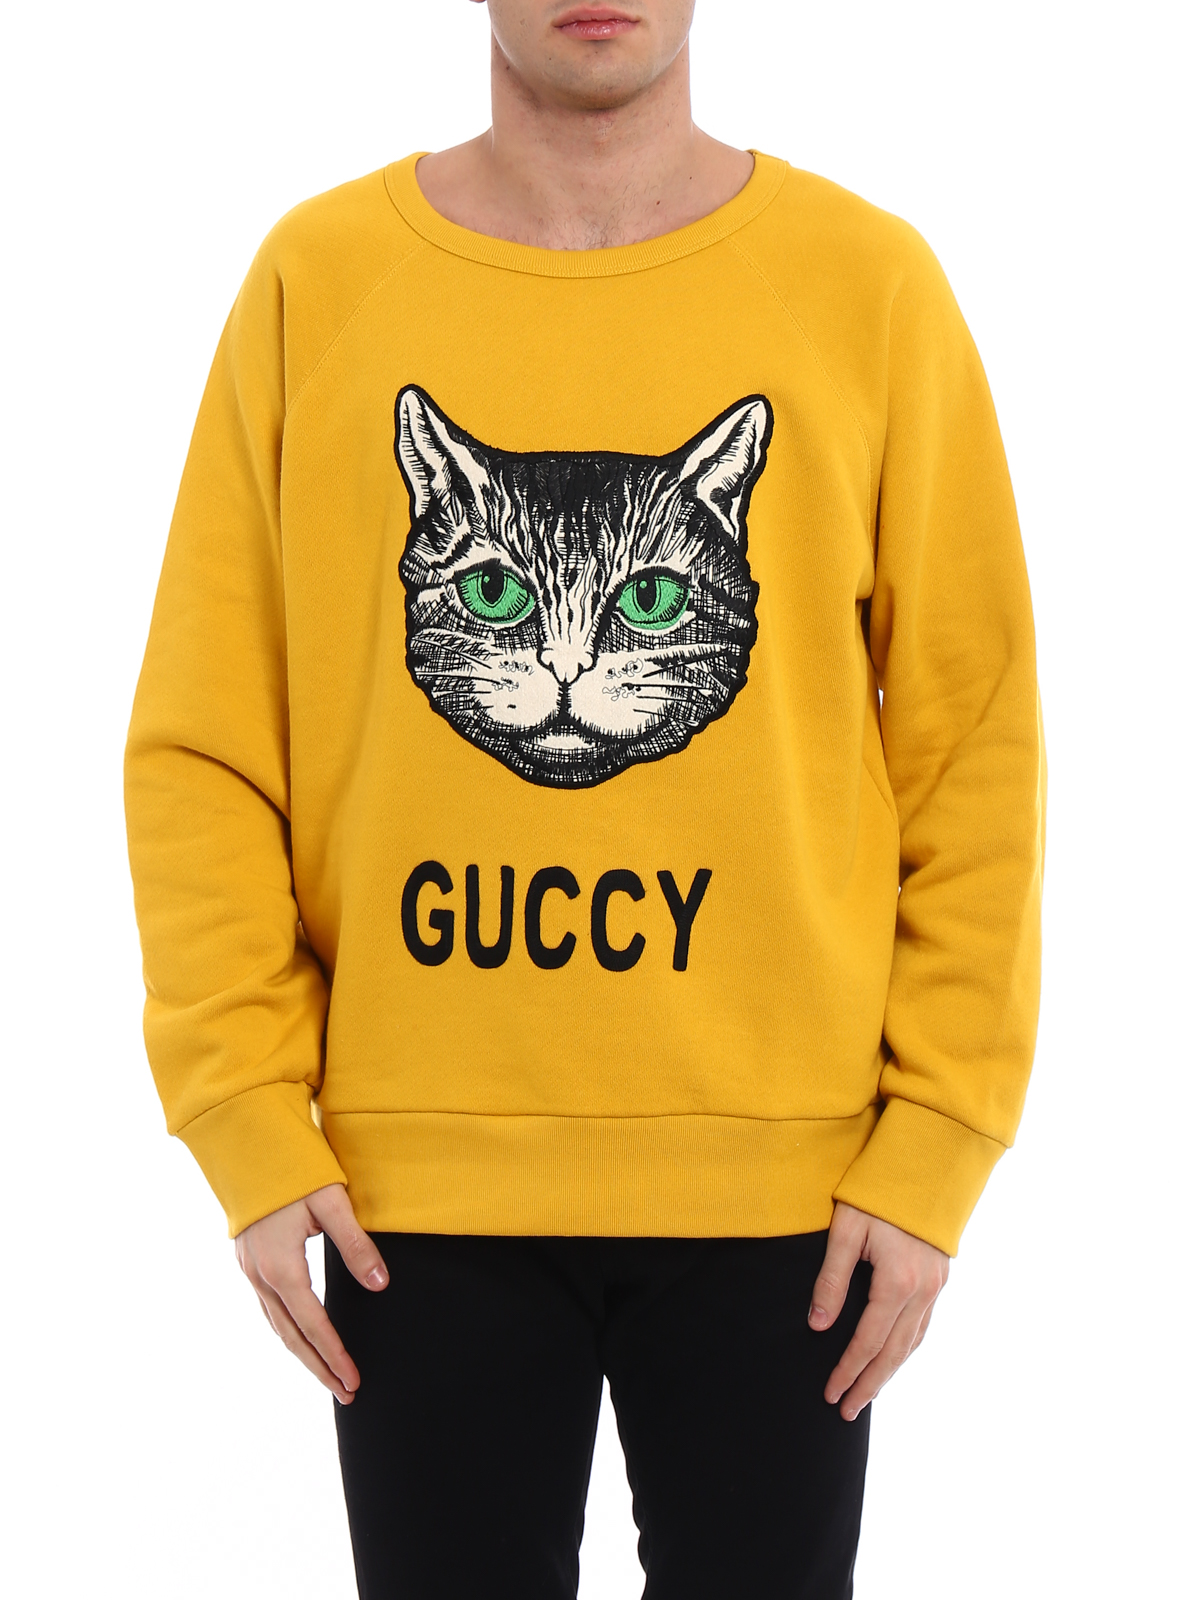 6f28d326547 iKRIX GUCCI  Sweatshirts   Sweaters - Guccy embroidered cotton sweatshirt